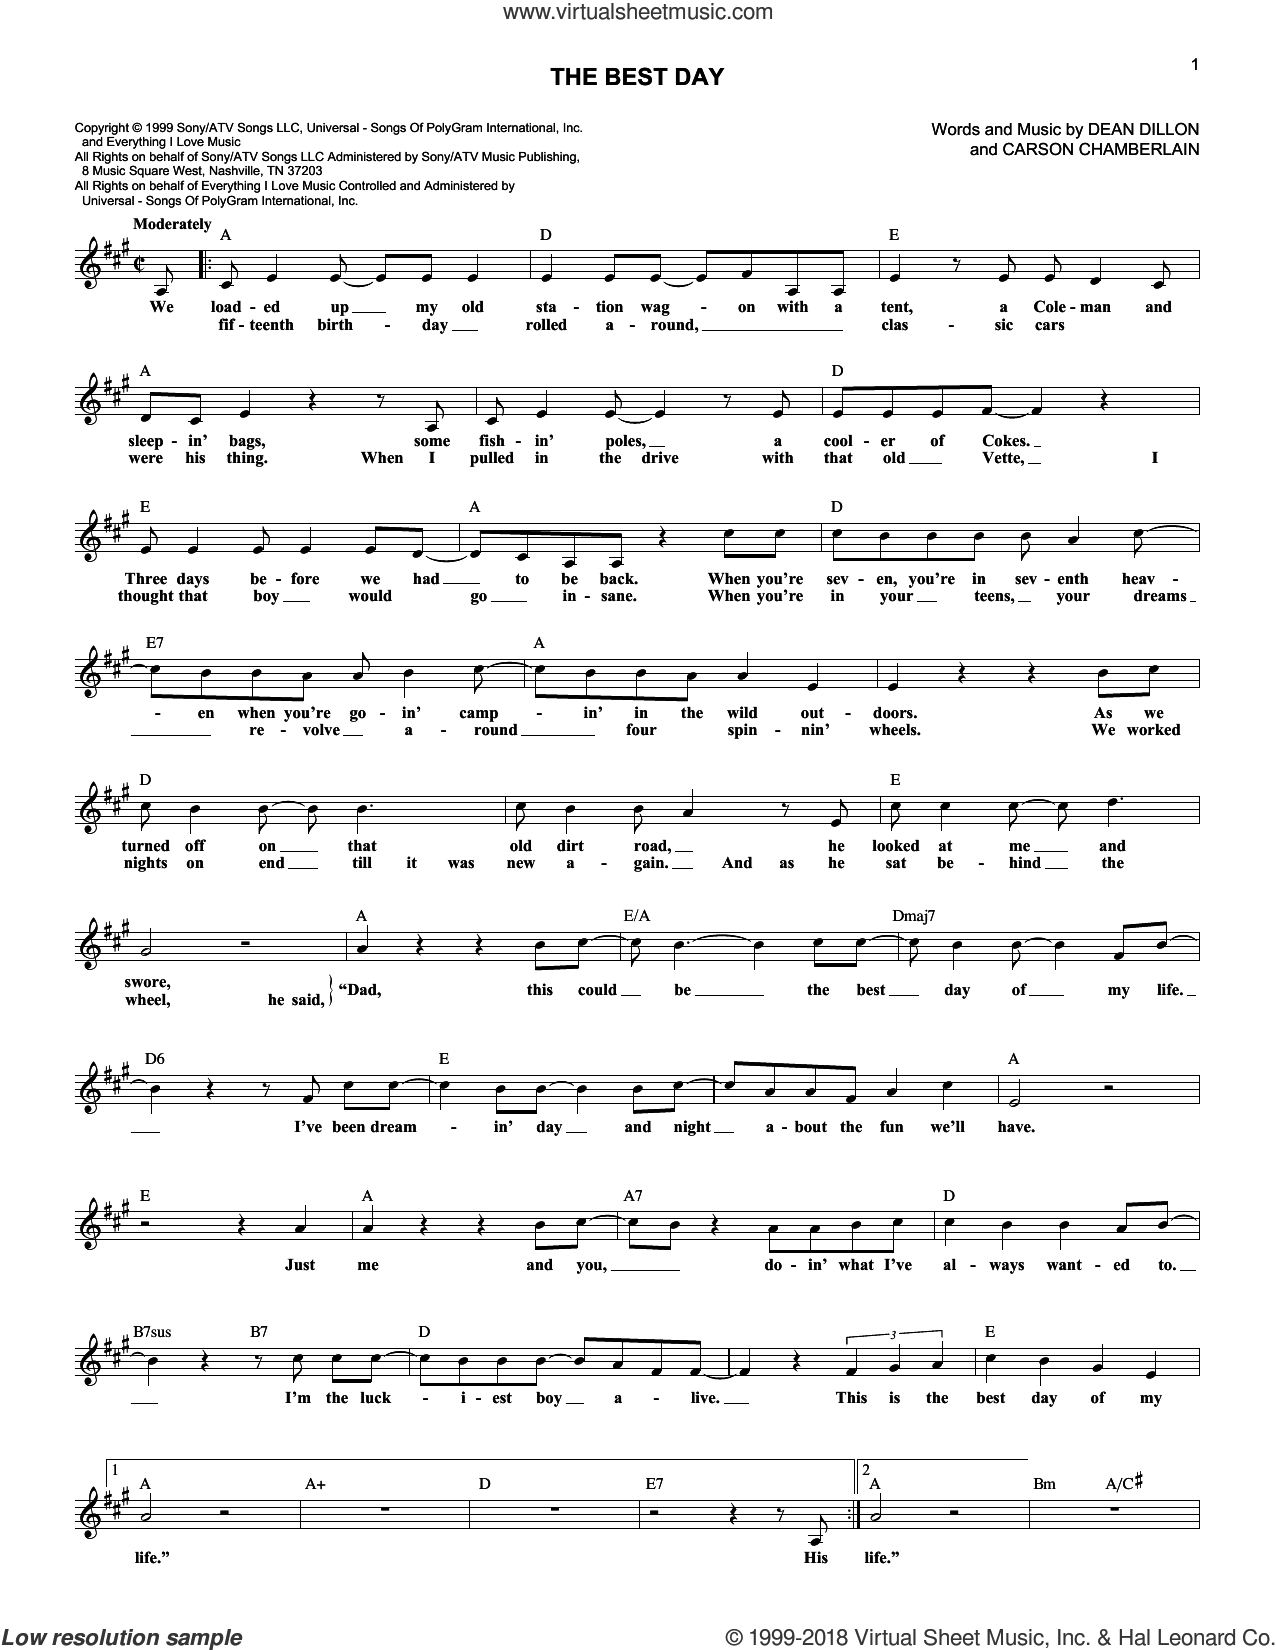 The Best Day sheet music for voice and other instruments (fake book) by George Strait, Carson Chamberlain and Dean Dillon, intermediate voice. Score Image Preview.